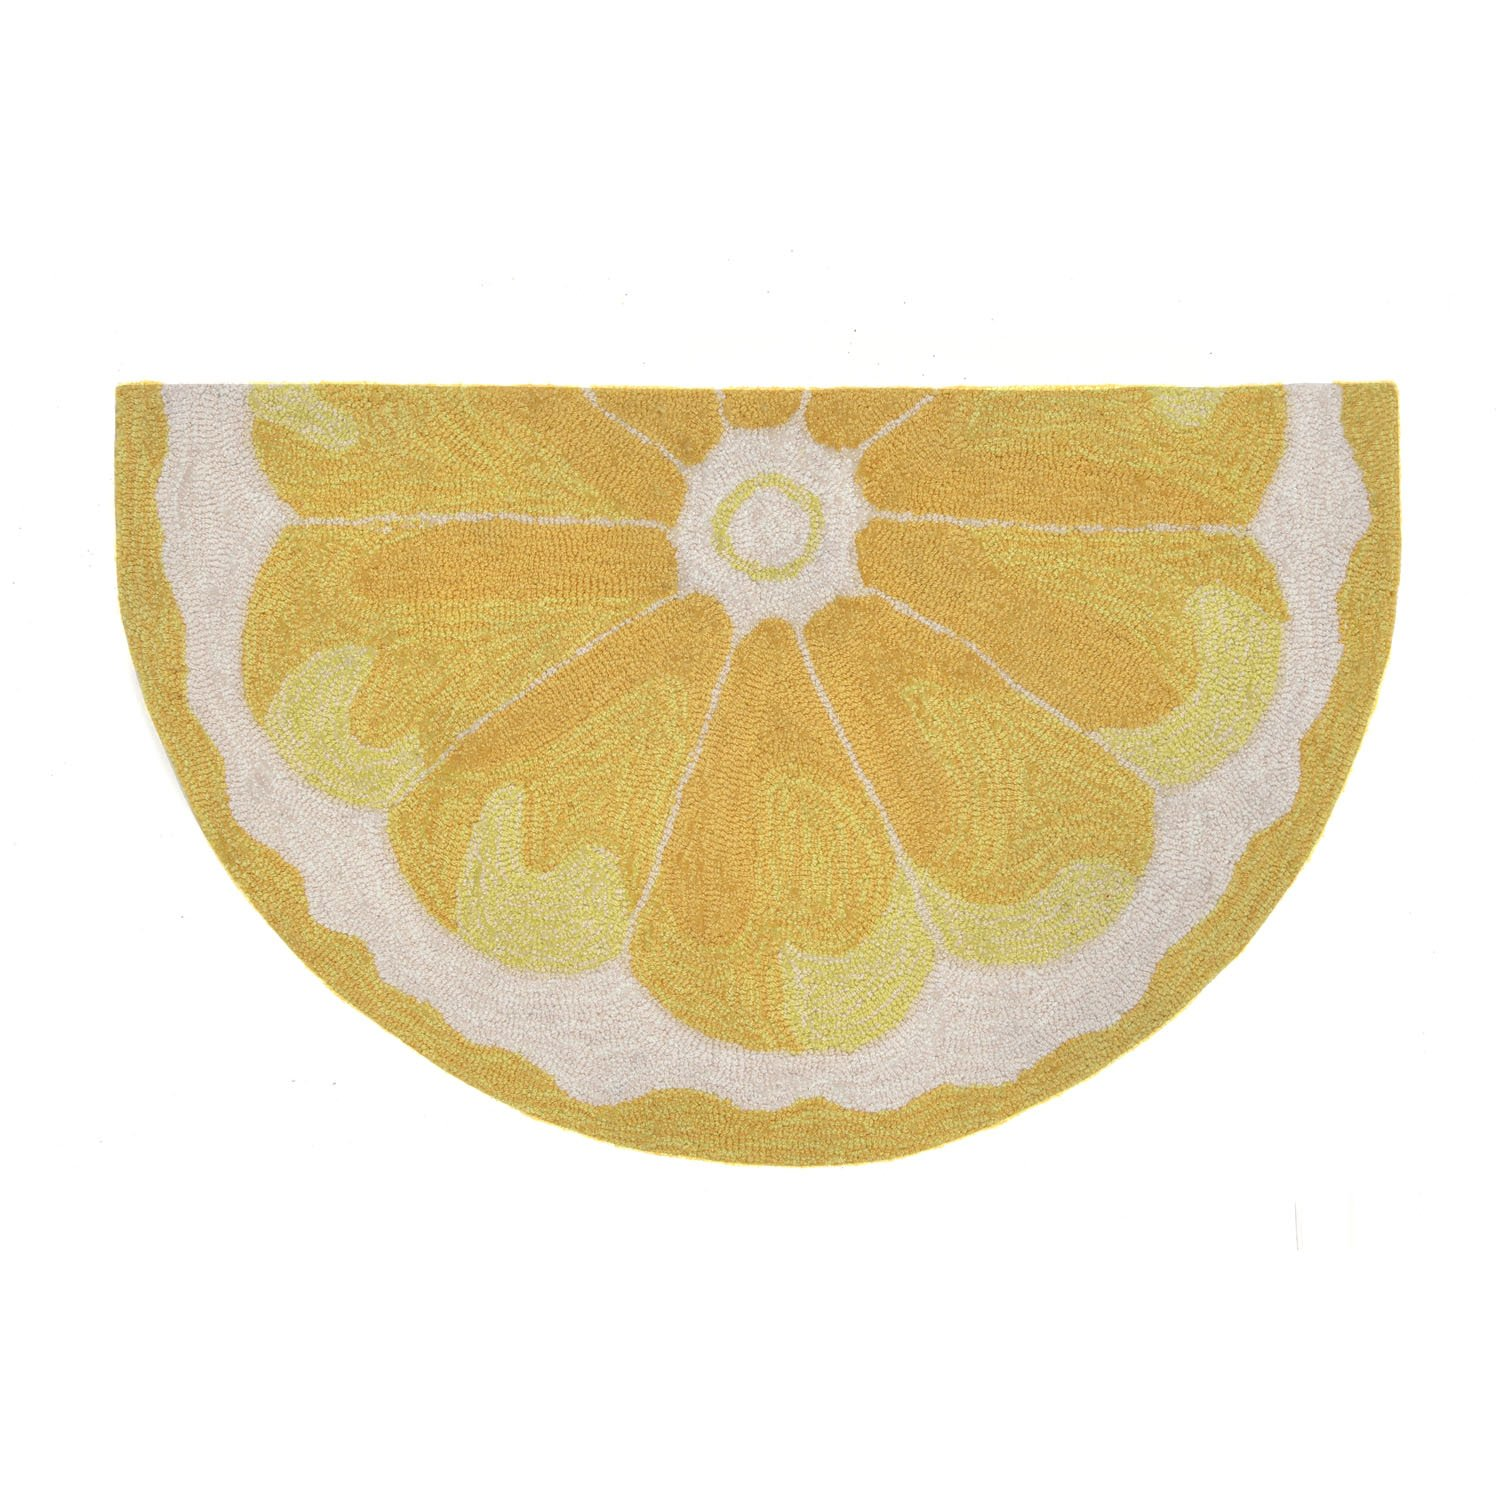 Liora Manne FT1H2A54209 Whimsy 1/2'' Round Sour Rug, Indoor/Outdoor, 24'' x 36'', Yellow